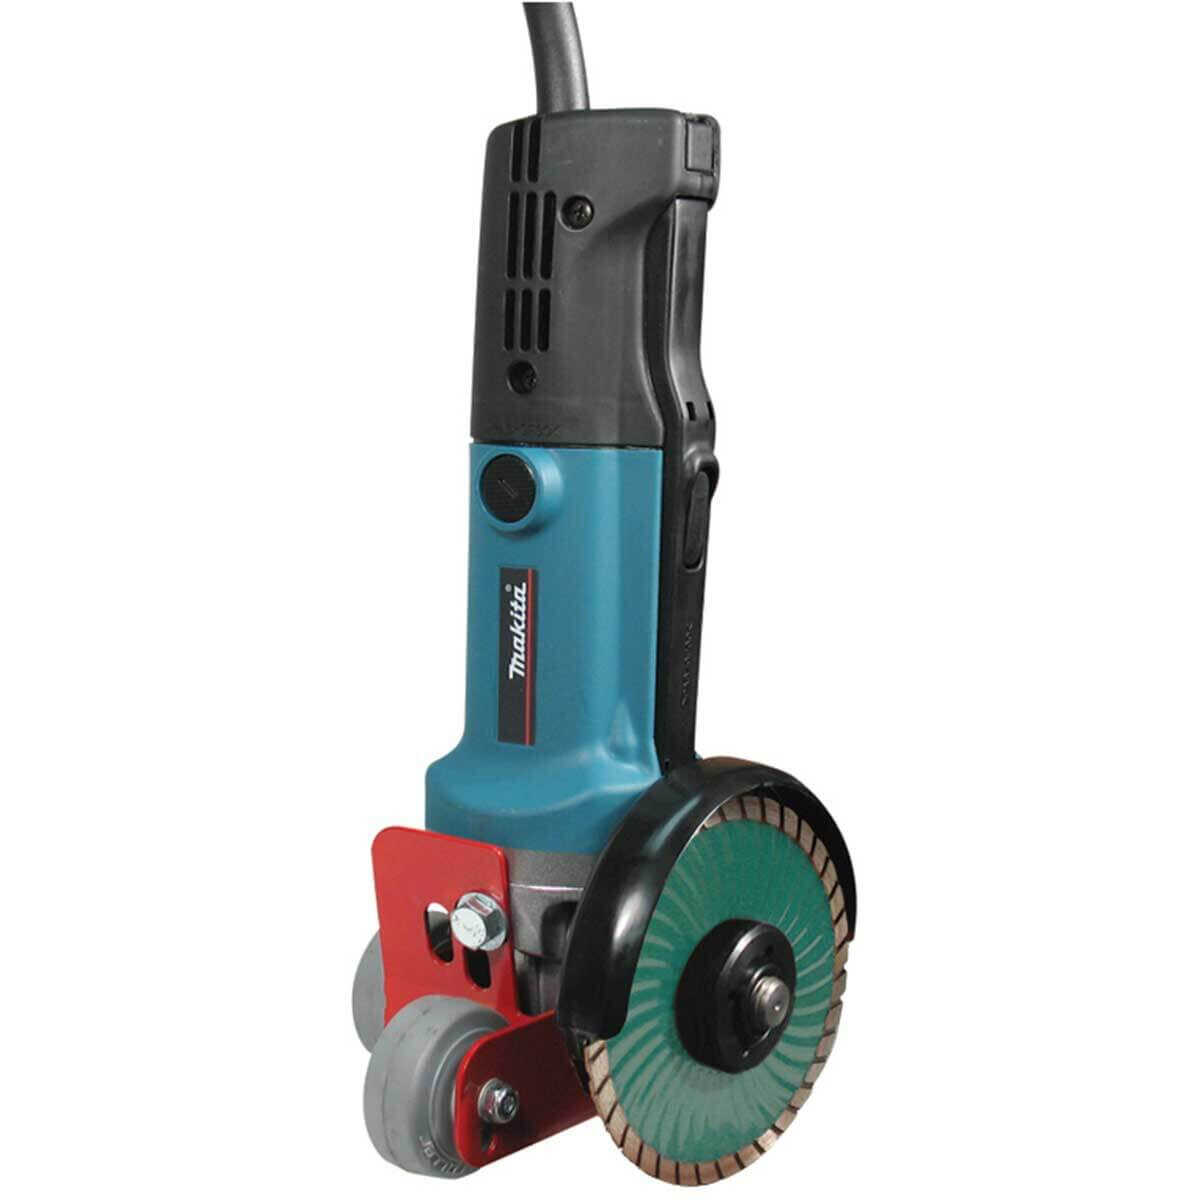 Pearl Abrasive Roller Caddy Attachment for Angle Grinders dry granite cutting blade for slab fabrication